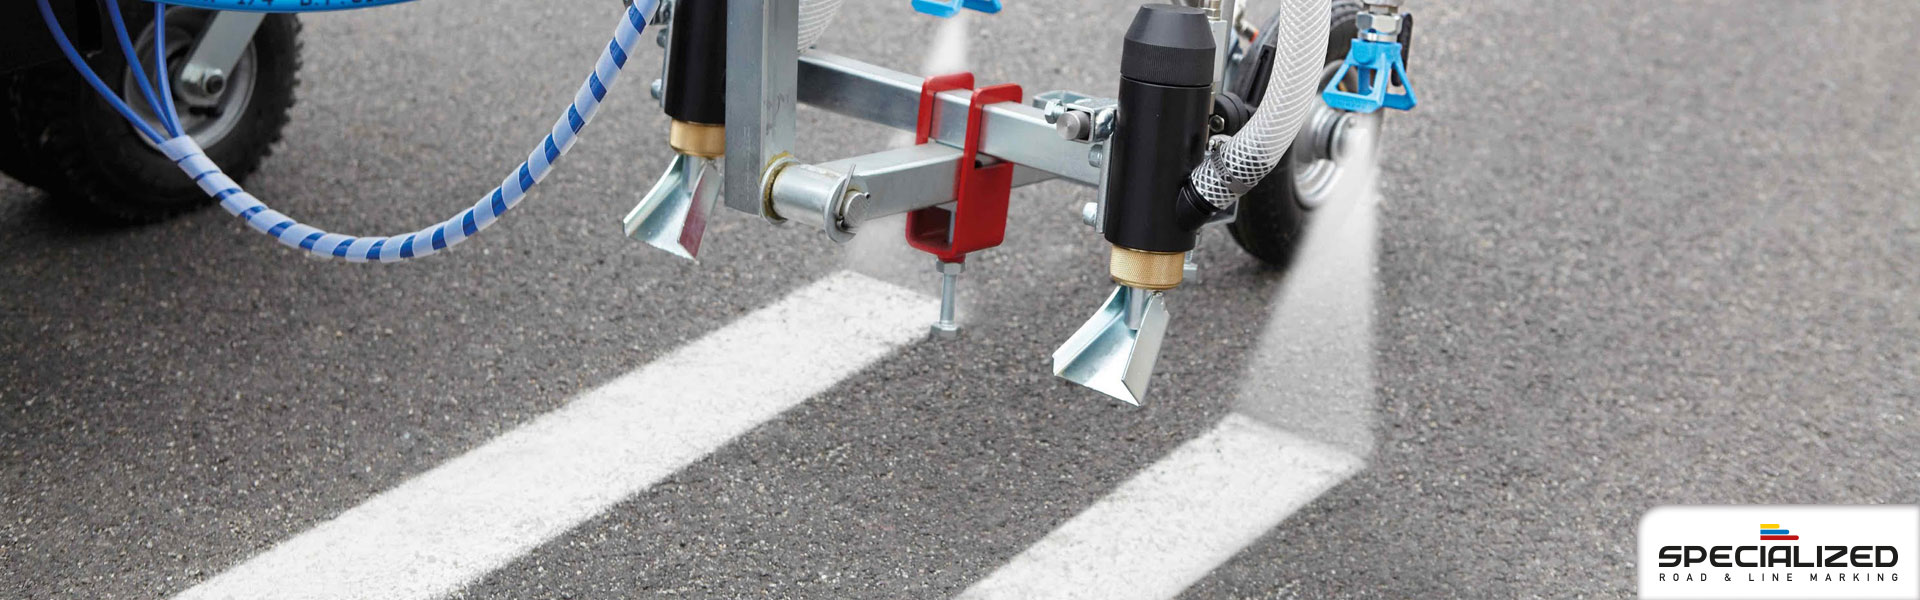 Road and Line Marking image